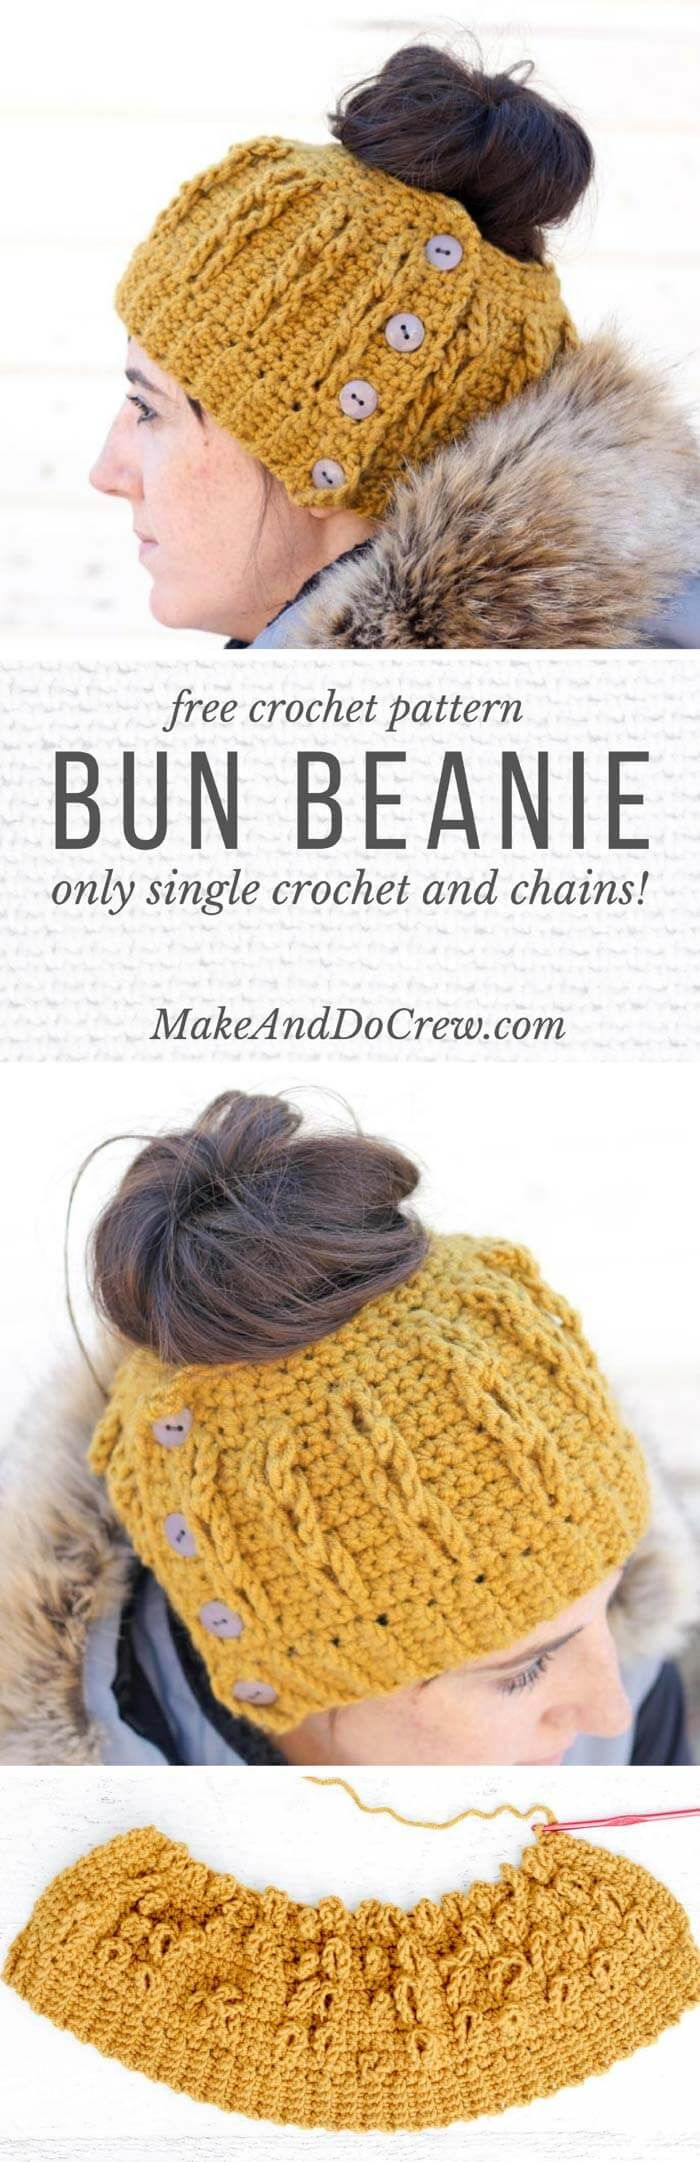 The cabled look of this free crochet bun beanie pattern is worked in only single crochet and chain stitches! Free pattern + video tutorial.